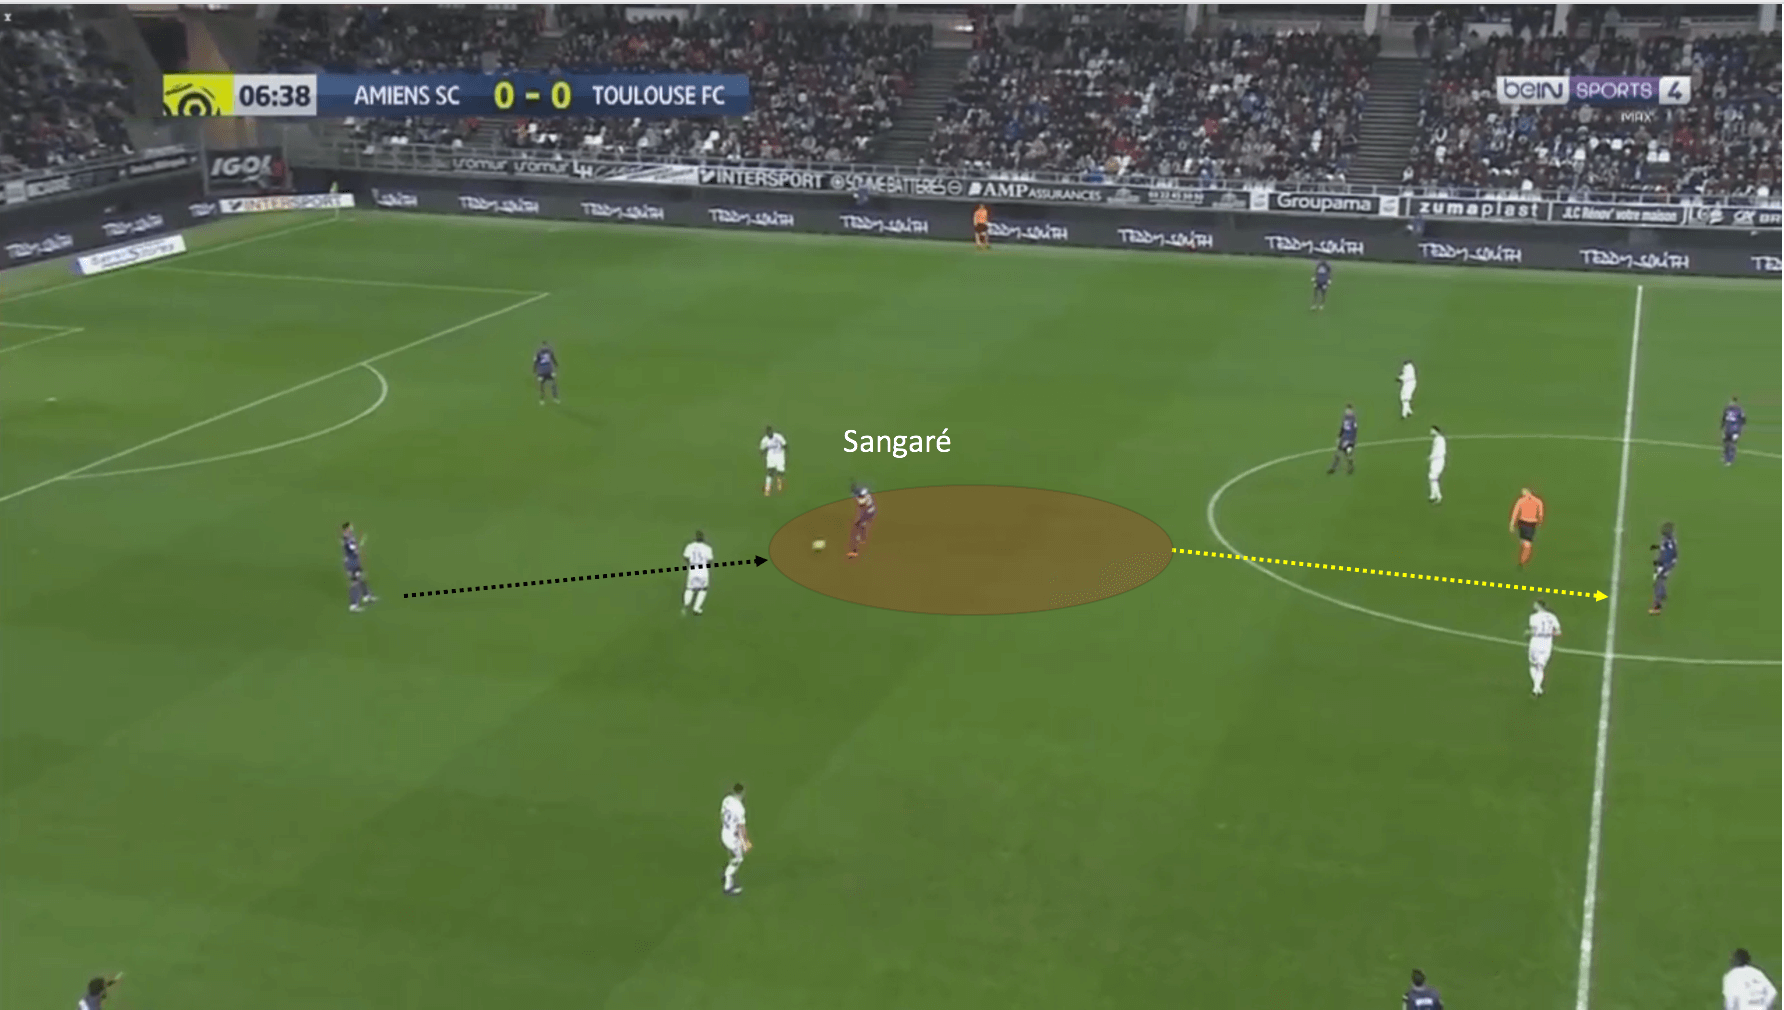 Ibrahim Sangaré at Toulouse 2019/20 - scout report - tactical analysis tactics